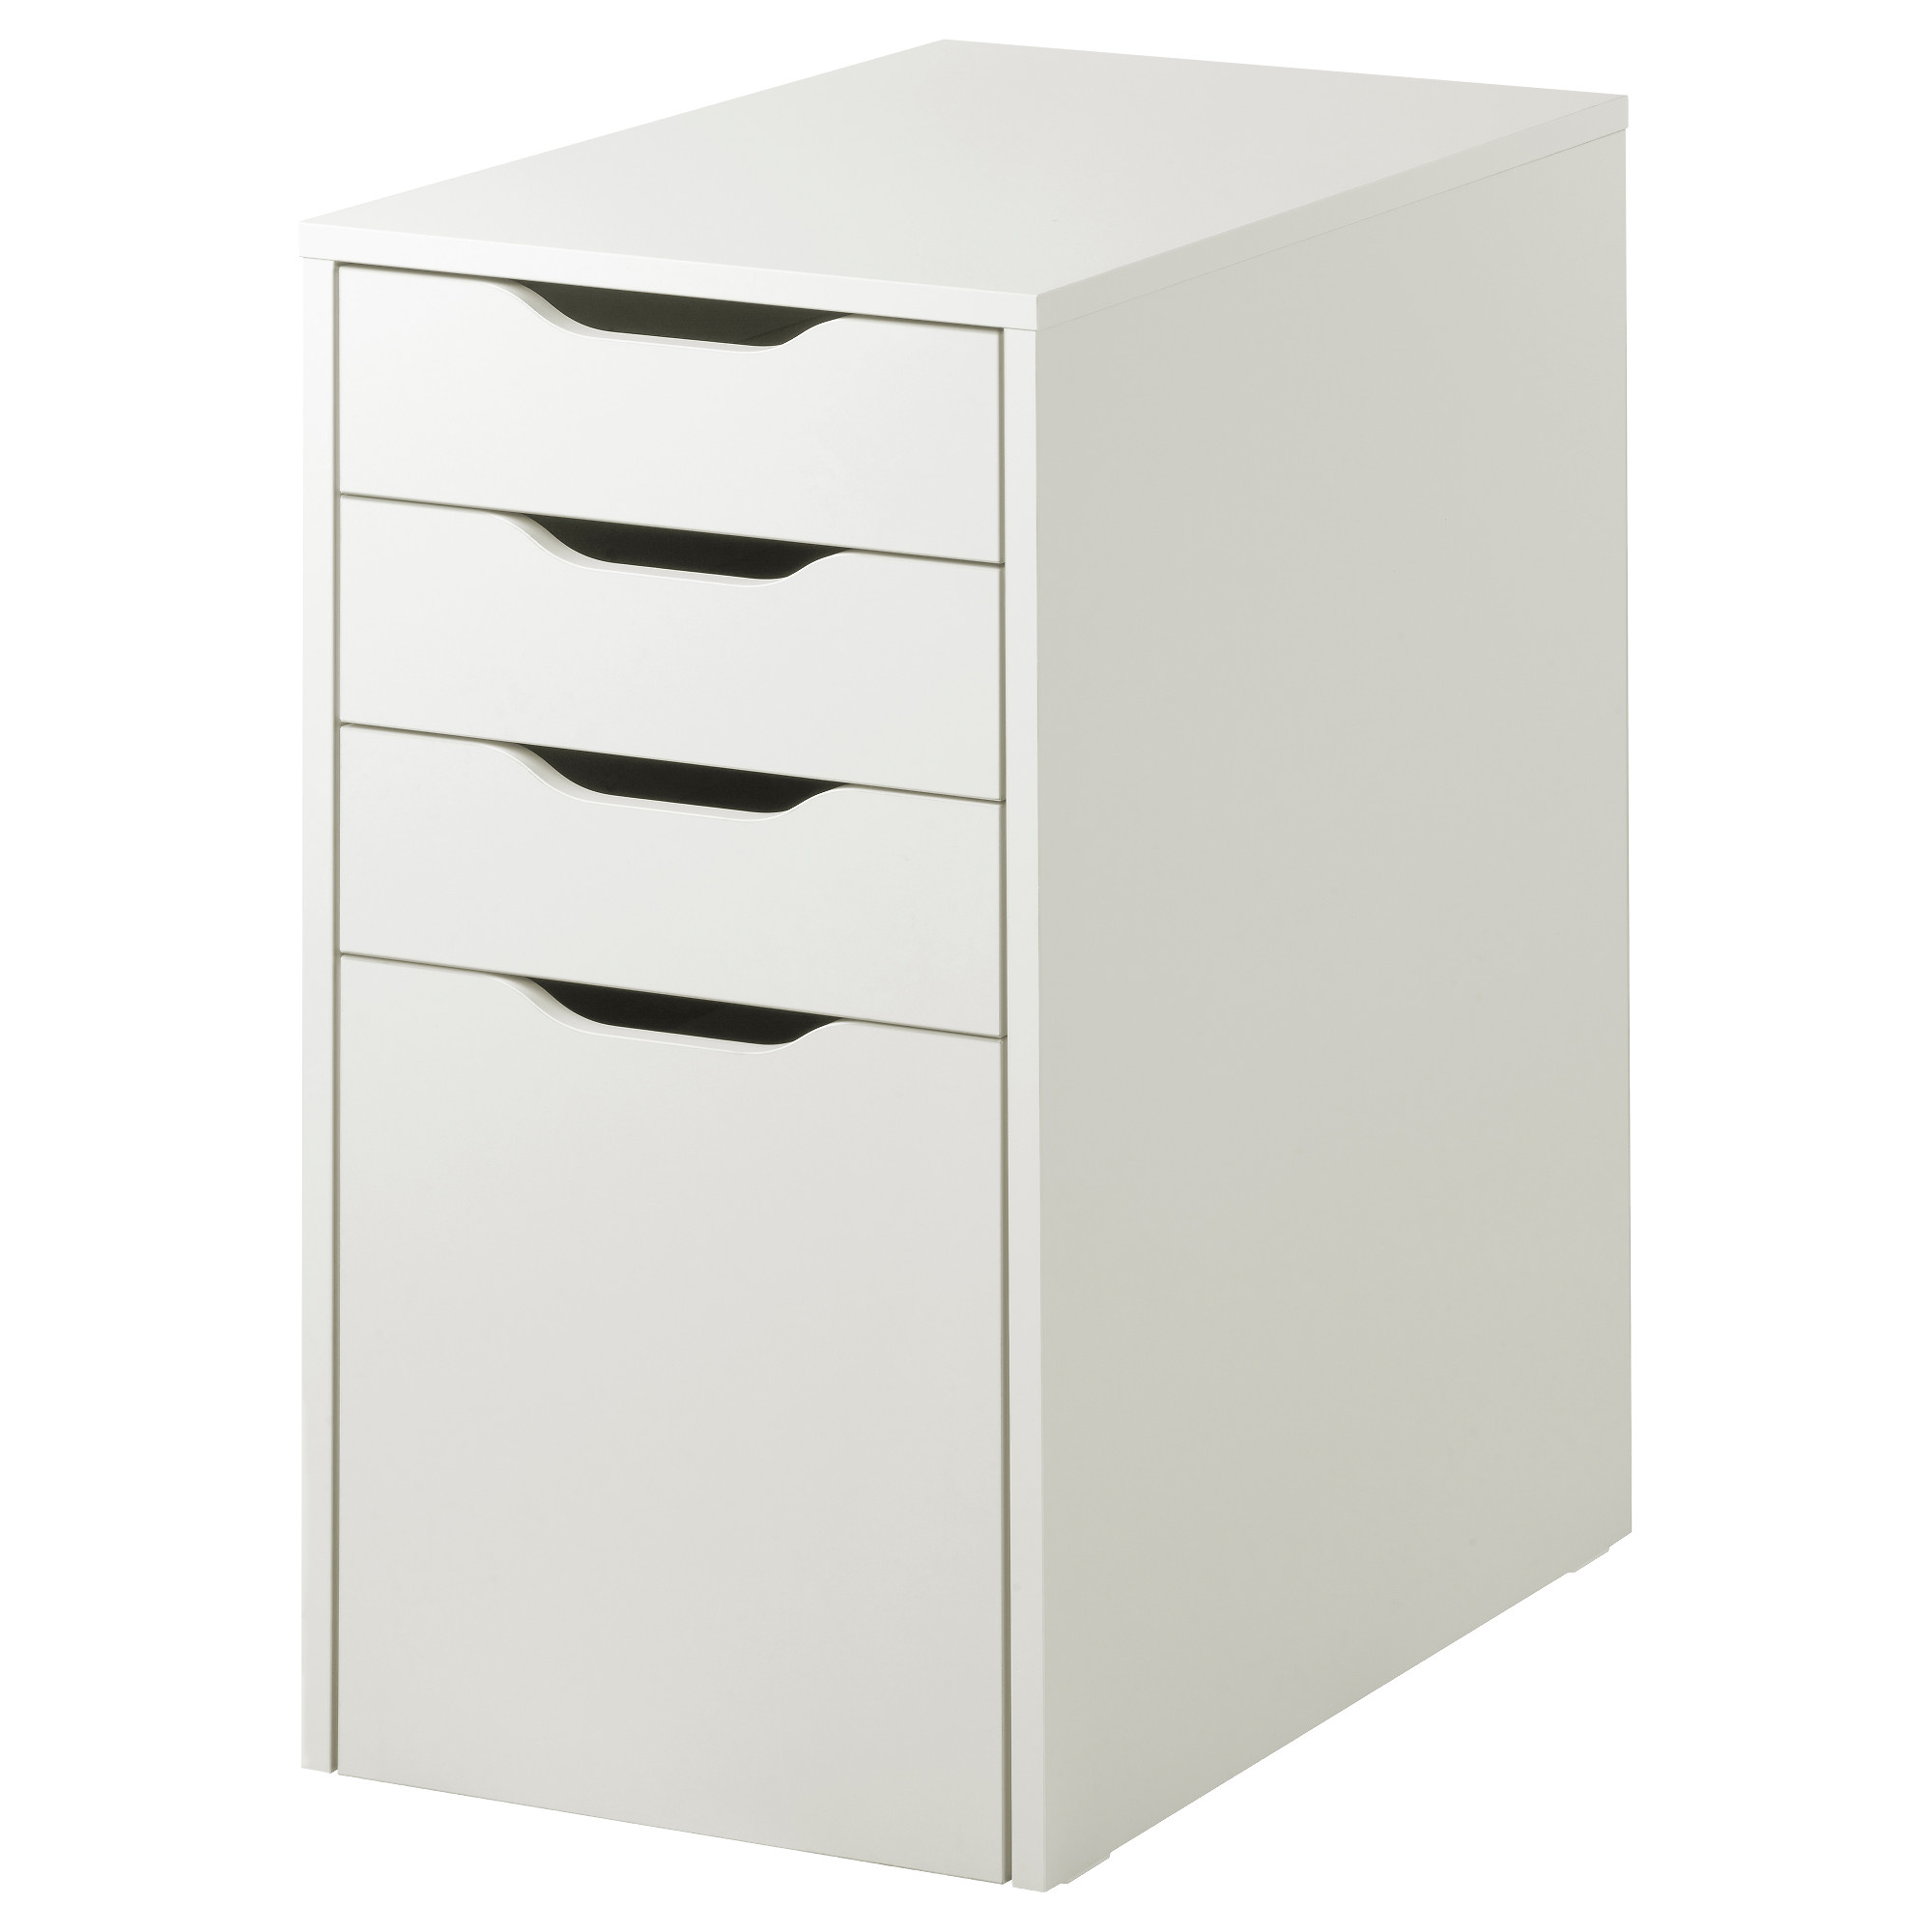 ikea office filing cabinet. Ikea Office Filing Cabinet W